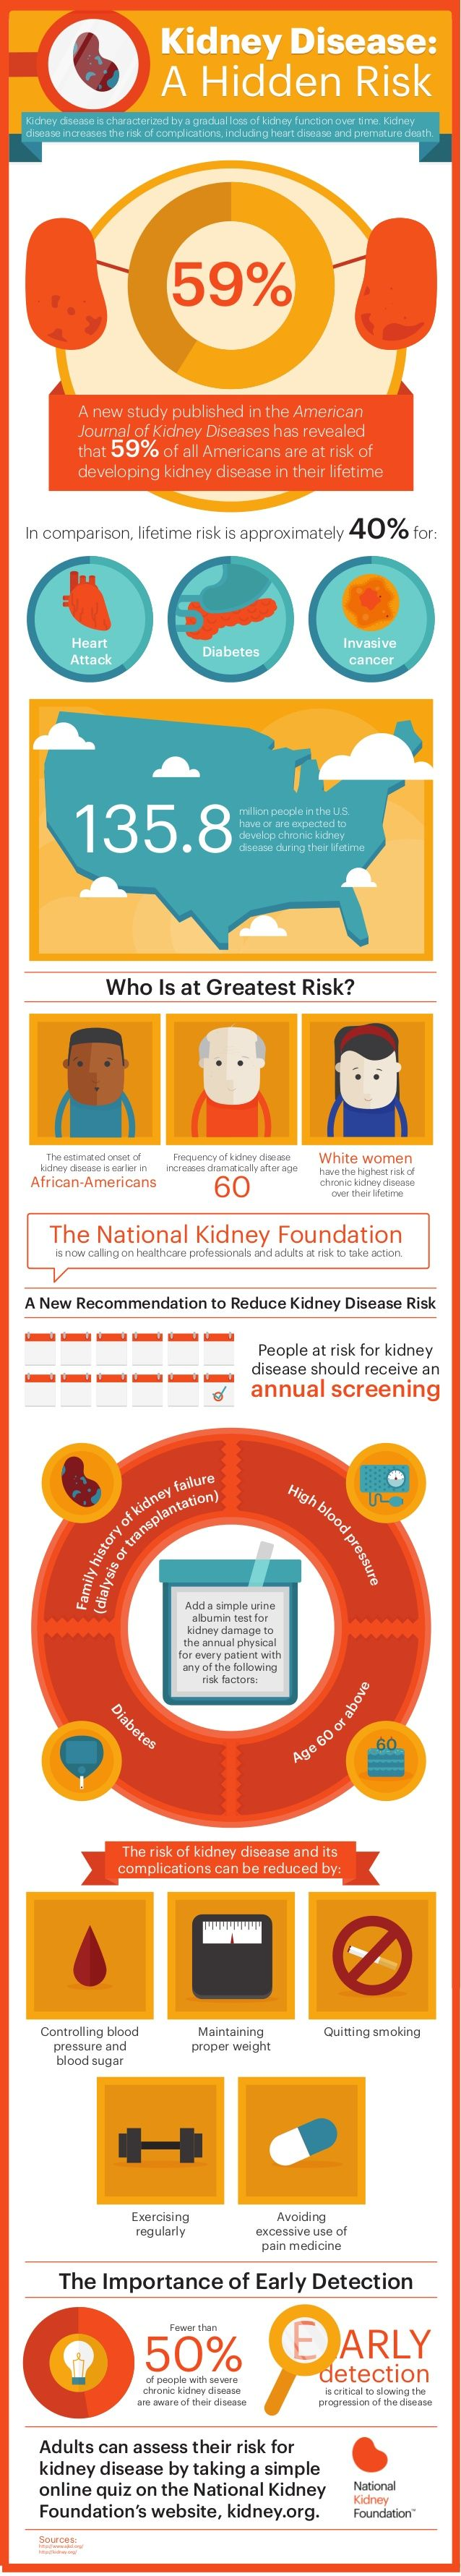 national kidney foundation The gfr calculator is a tool to help measure kidney function your gfr value, calculated by the gfr calculator,  national kidney foundation faqs about gfr.